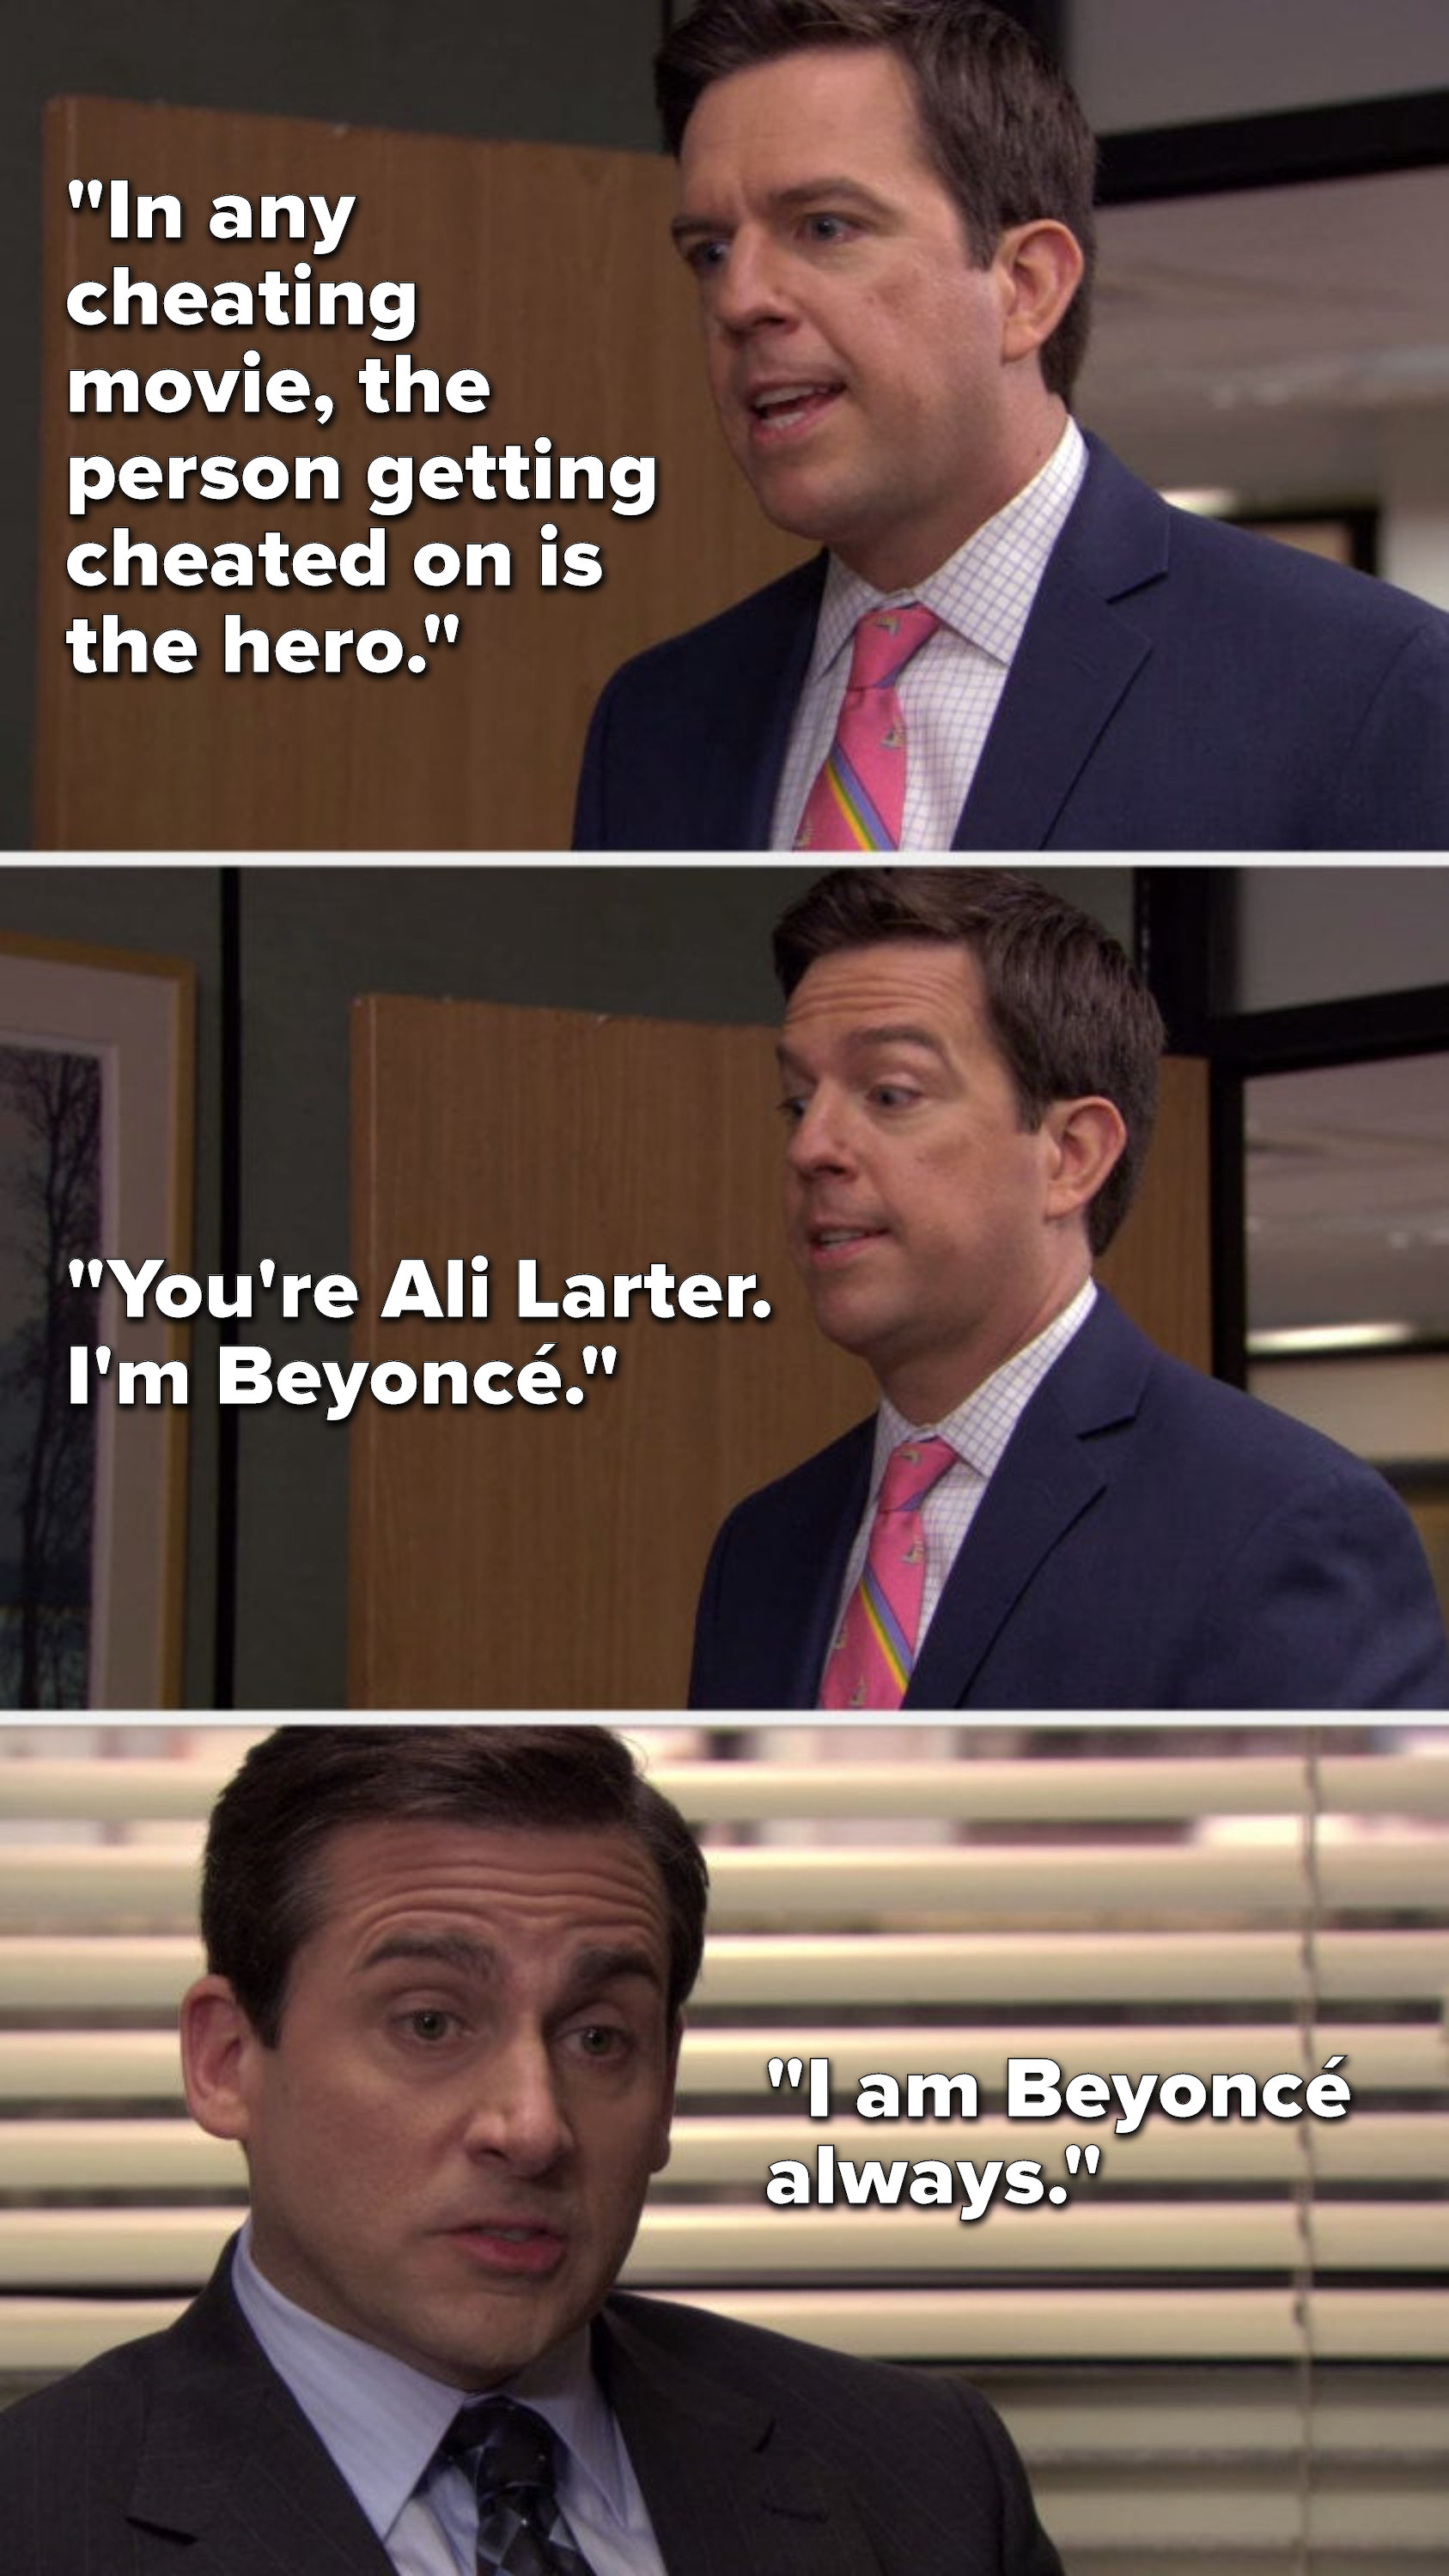 """Andy says, """"In any cheating movie, the person getting cheated on is the hero, you're Ali Larter, I'm Beyoncé,"""" and Michael says, """"I am Beyoncé always"""""""